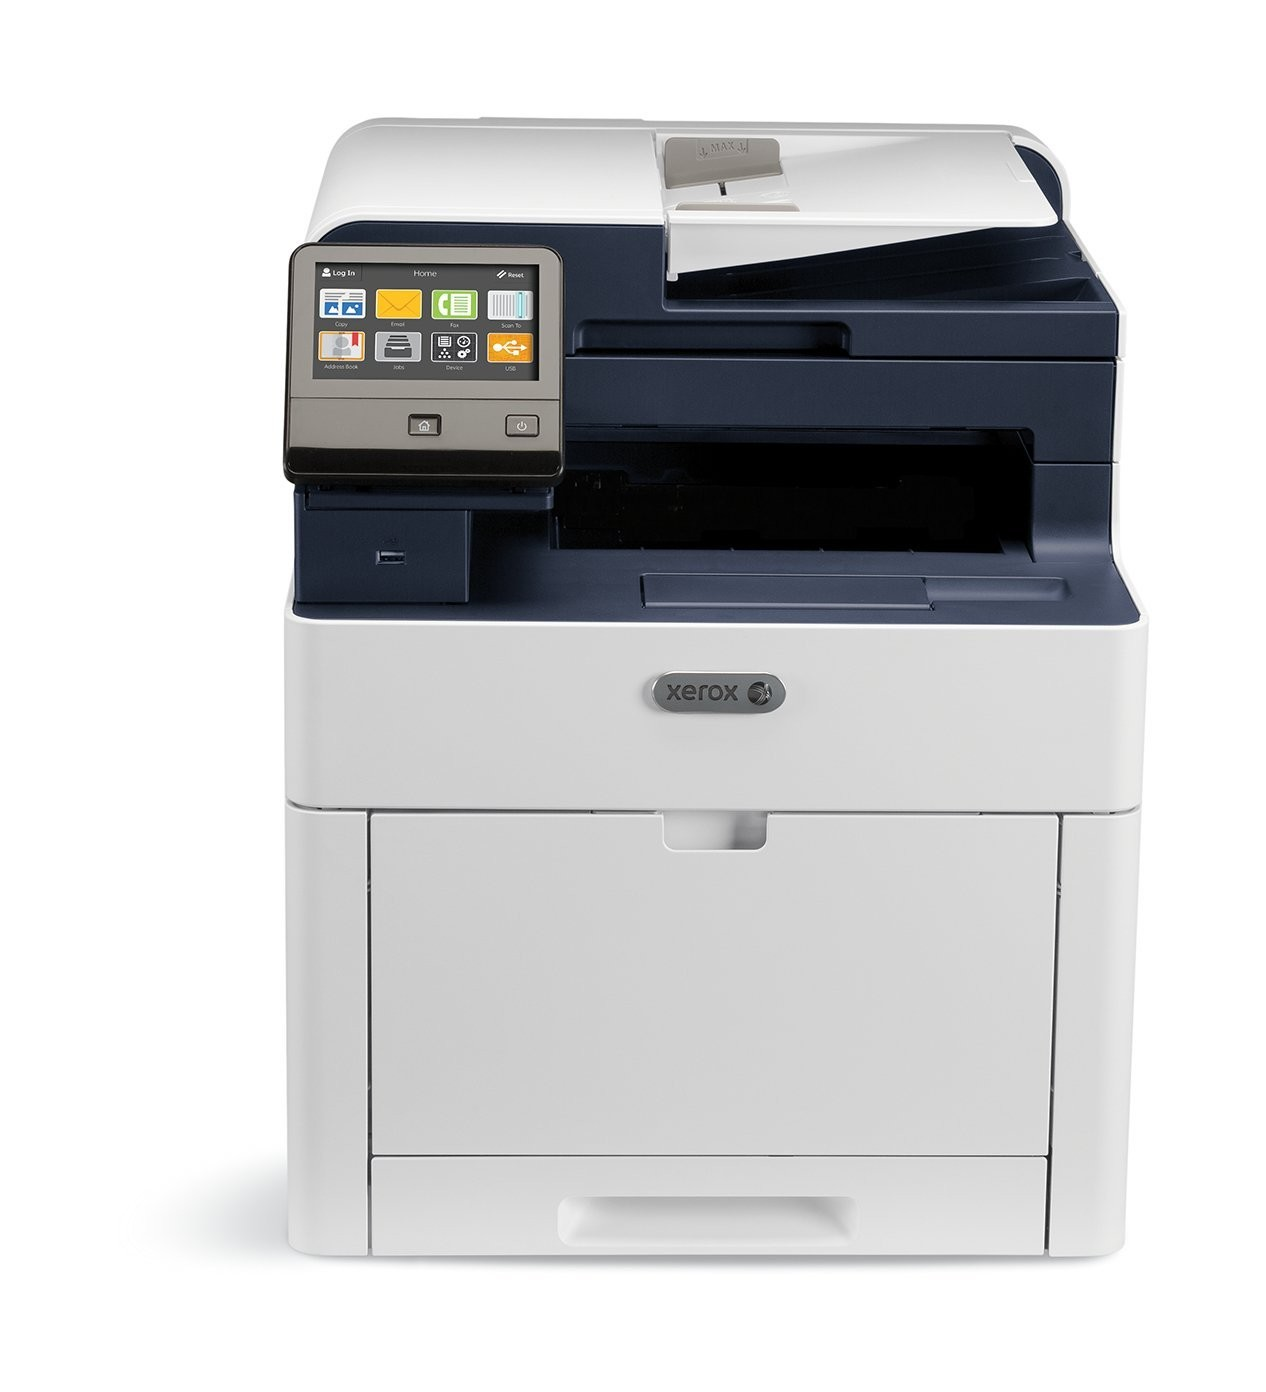 Xerox WorkCentre 6515 Laser Color LED All-in-One Printer 6515/DNI